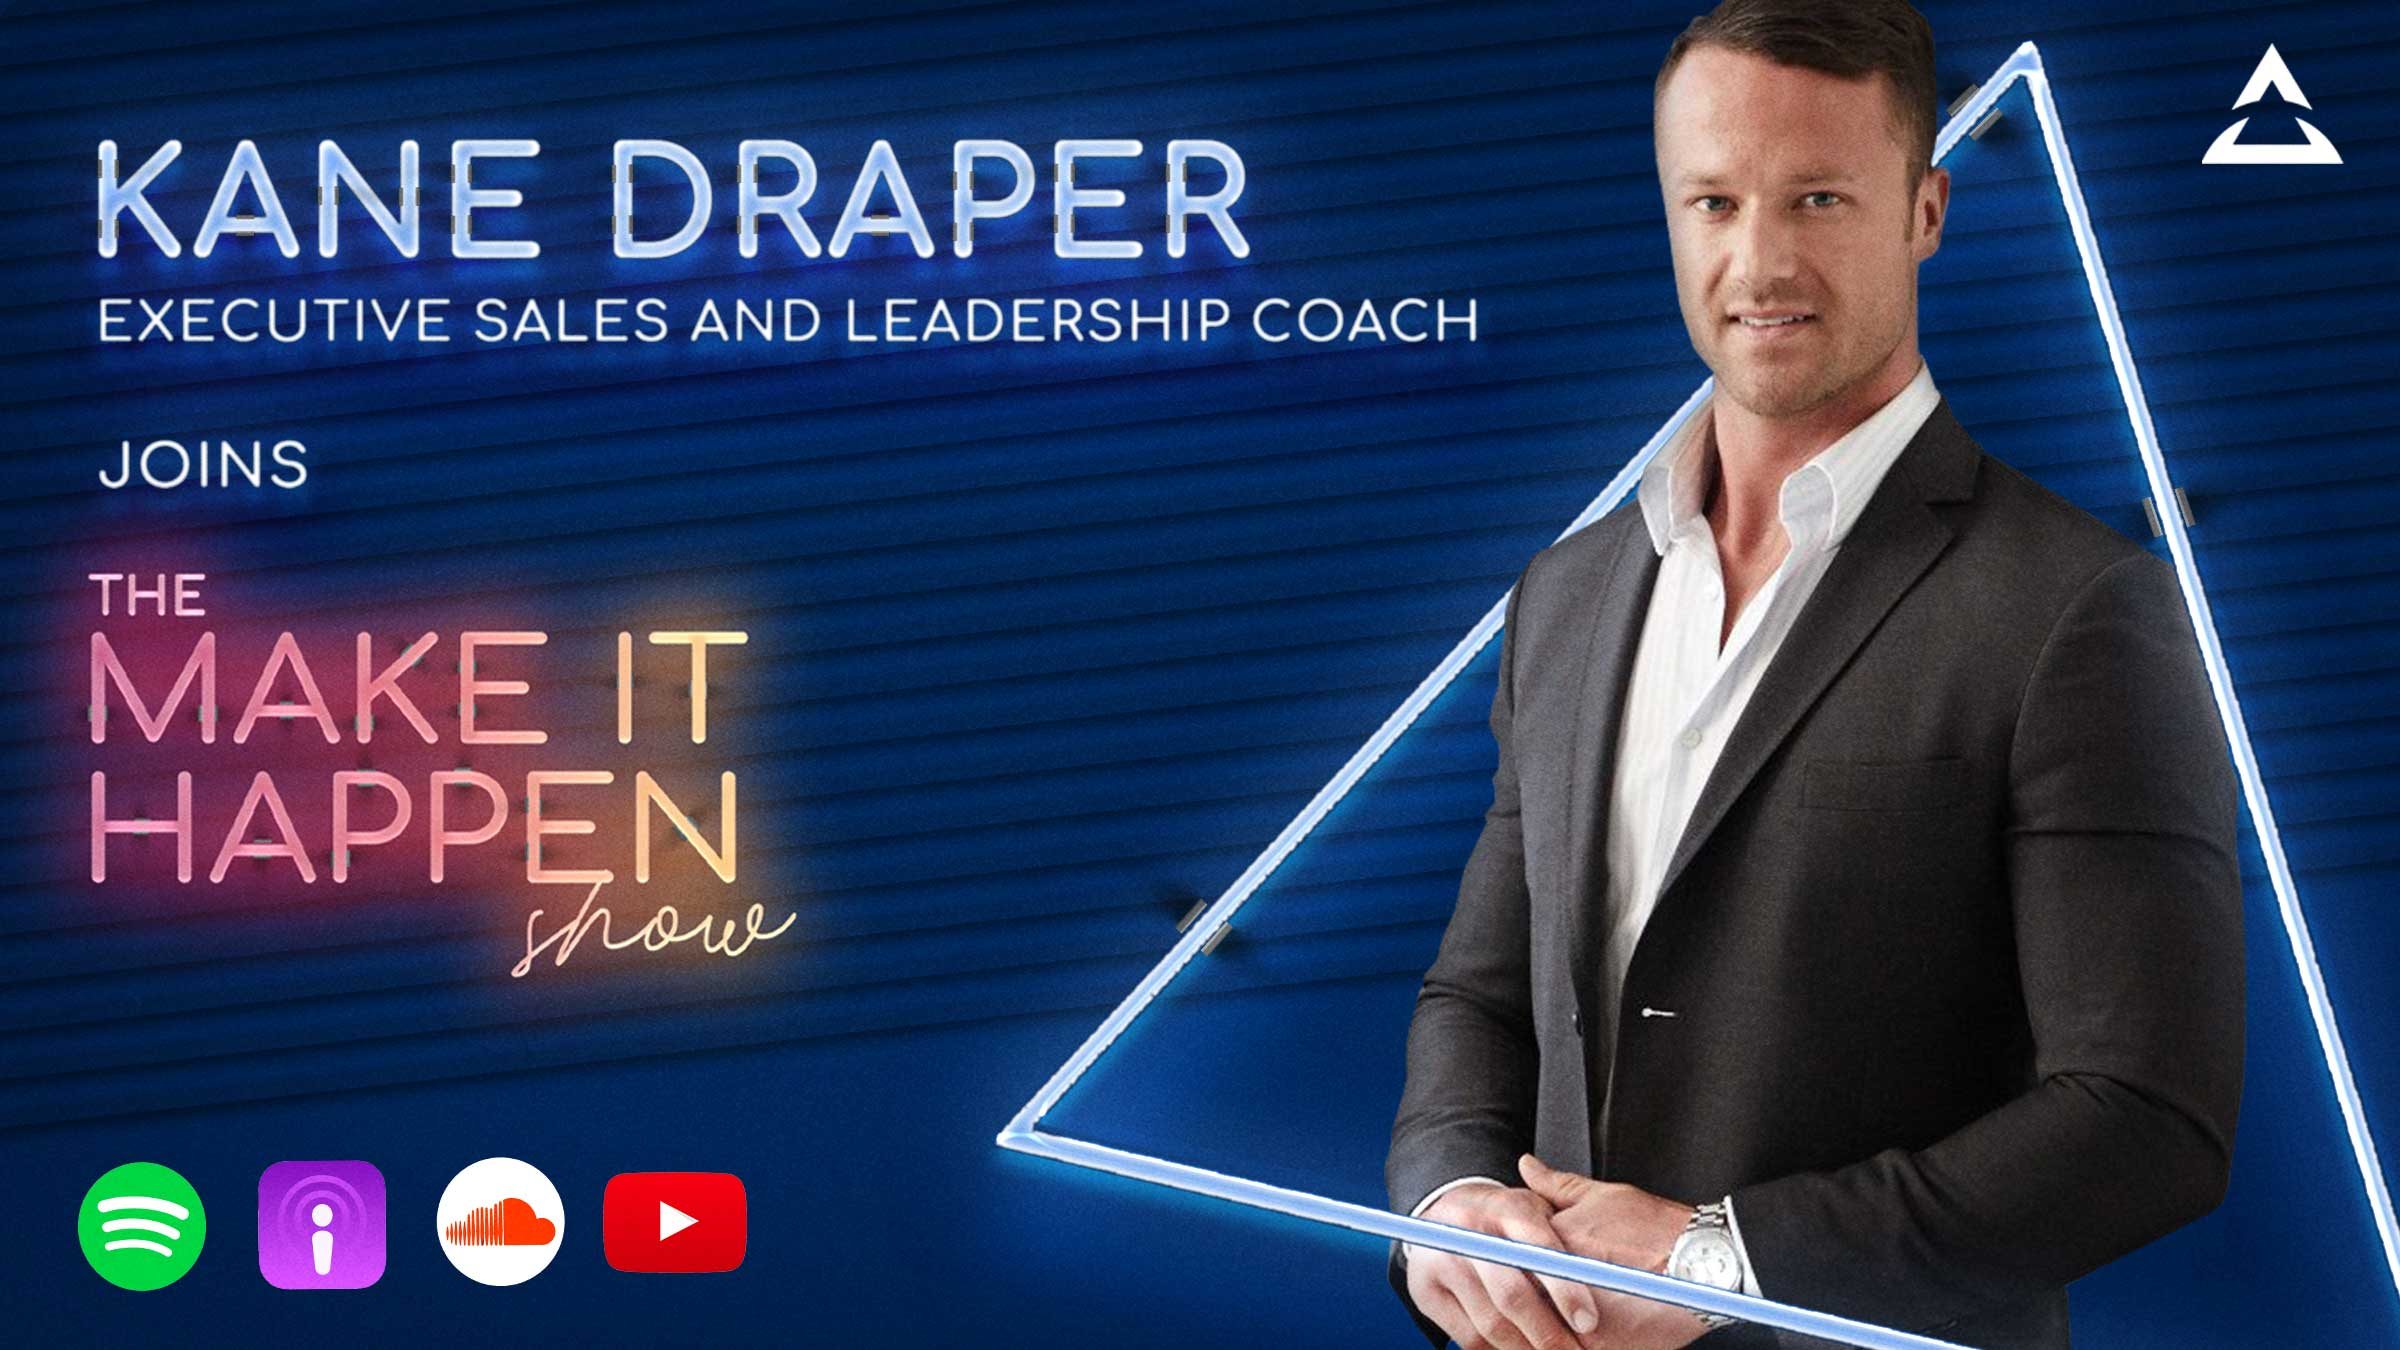 Kane Draper, executive sales and leadership coach joins The Make It Happen Show